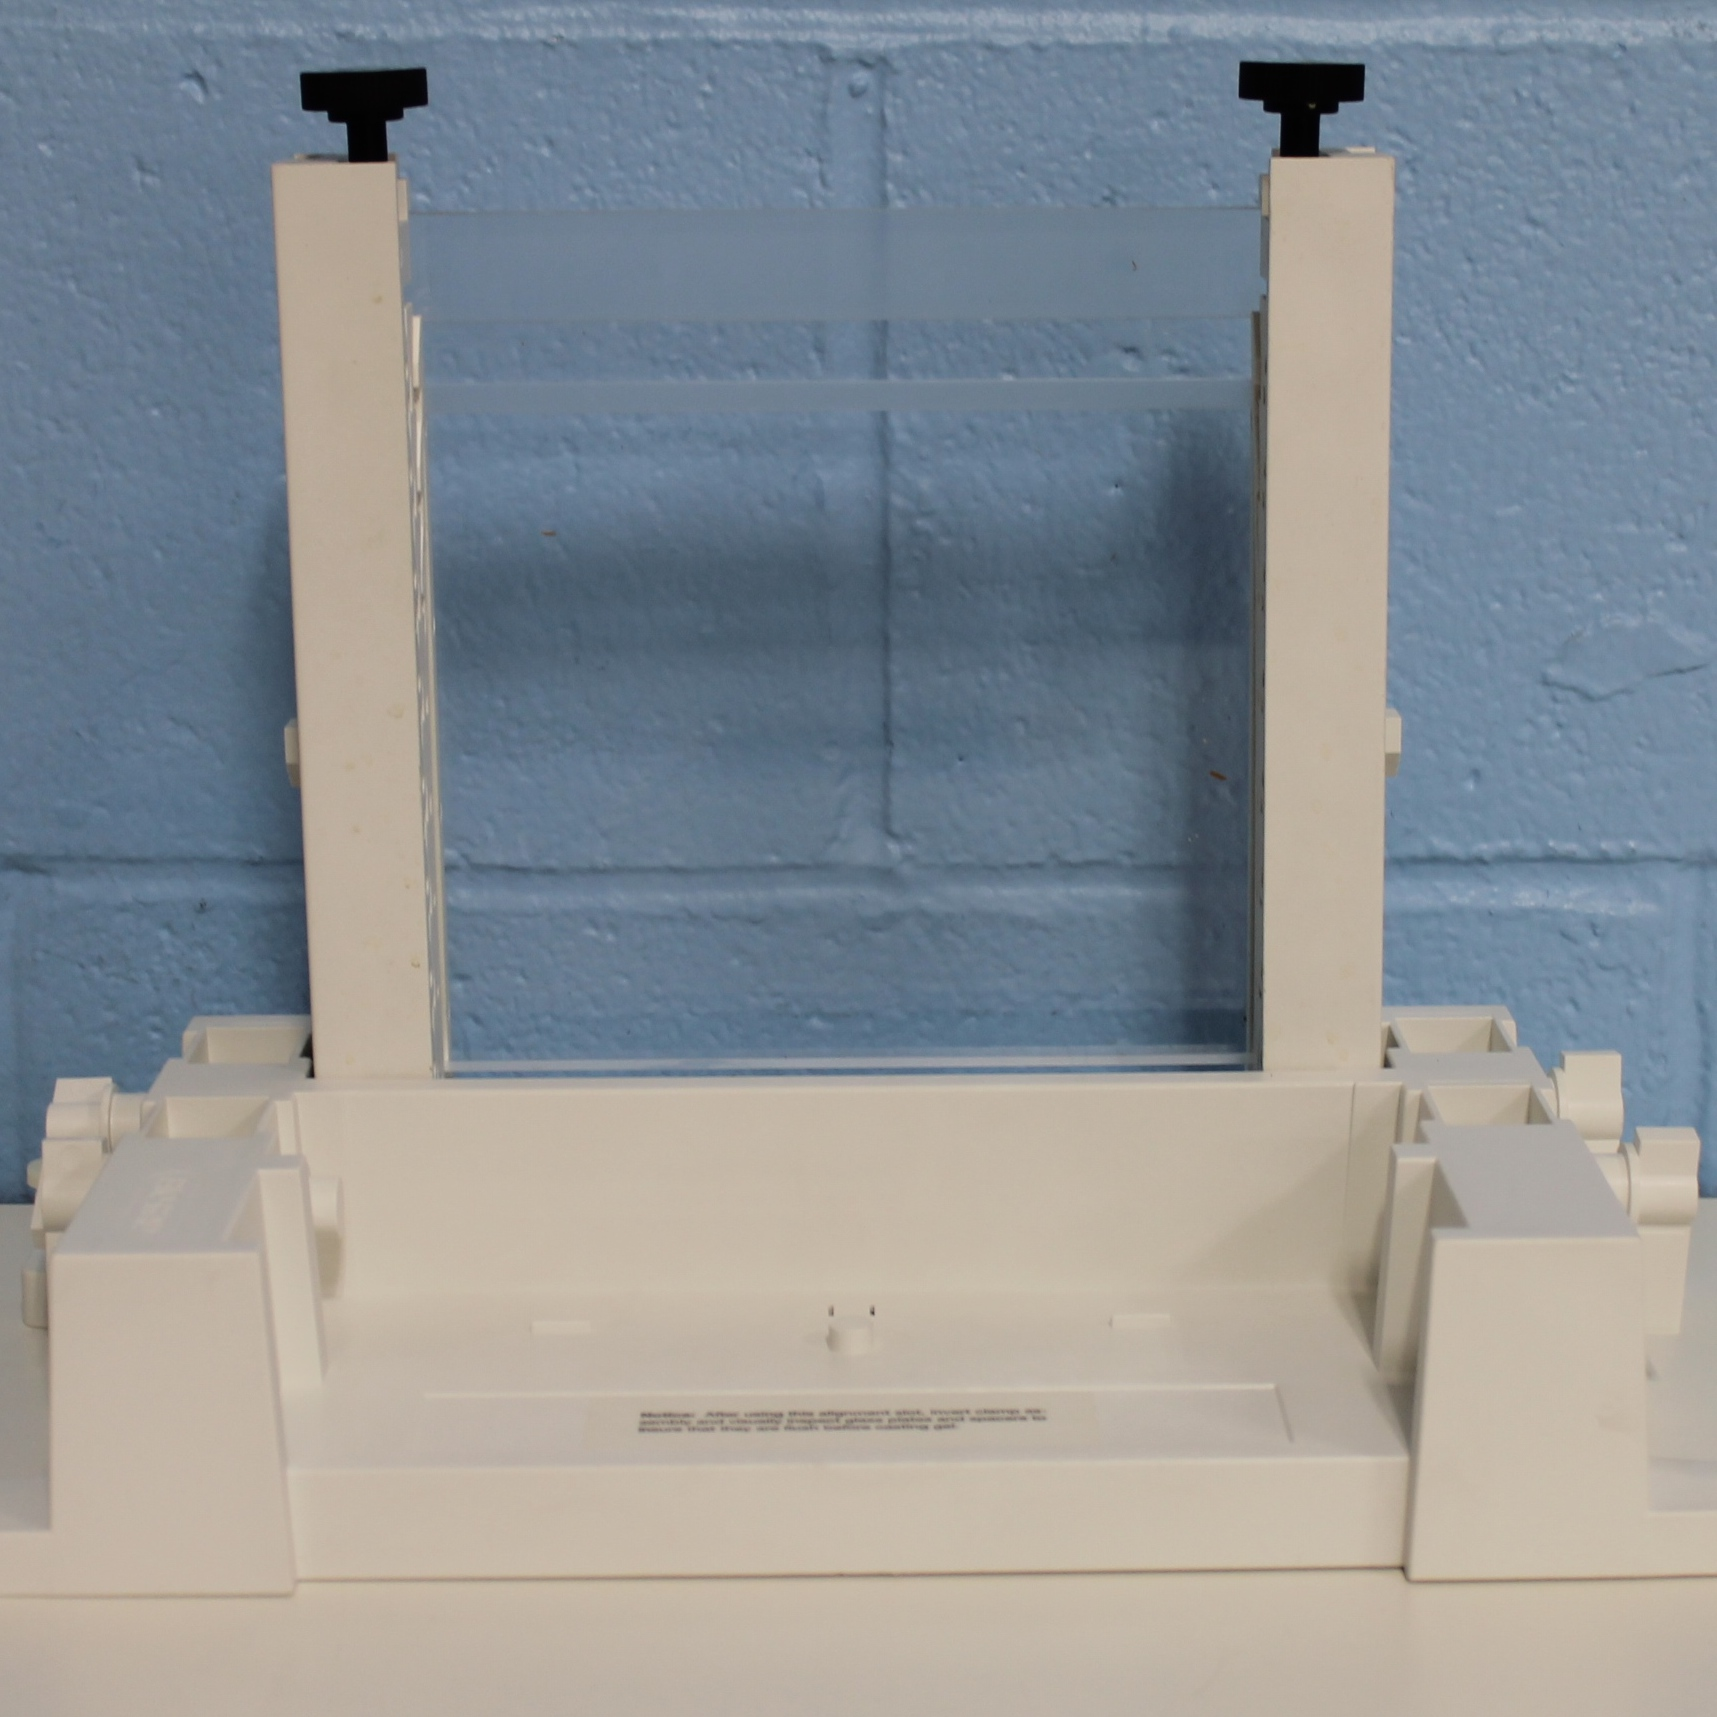 Protean II Electrophoresis Vertical Casting Stand